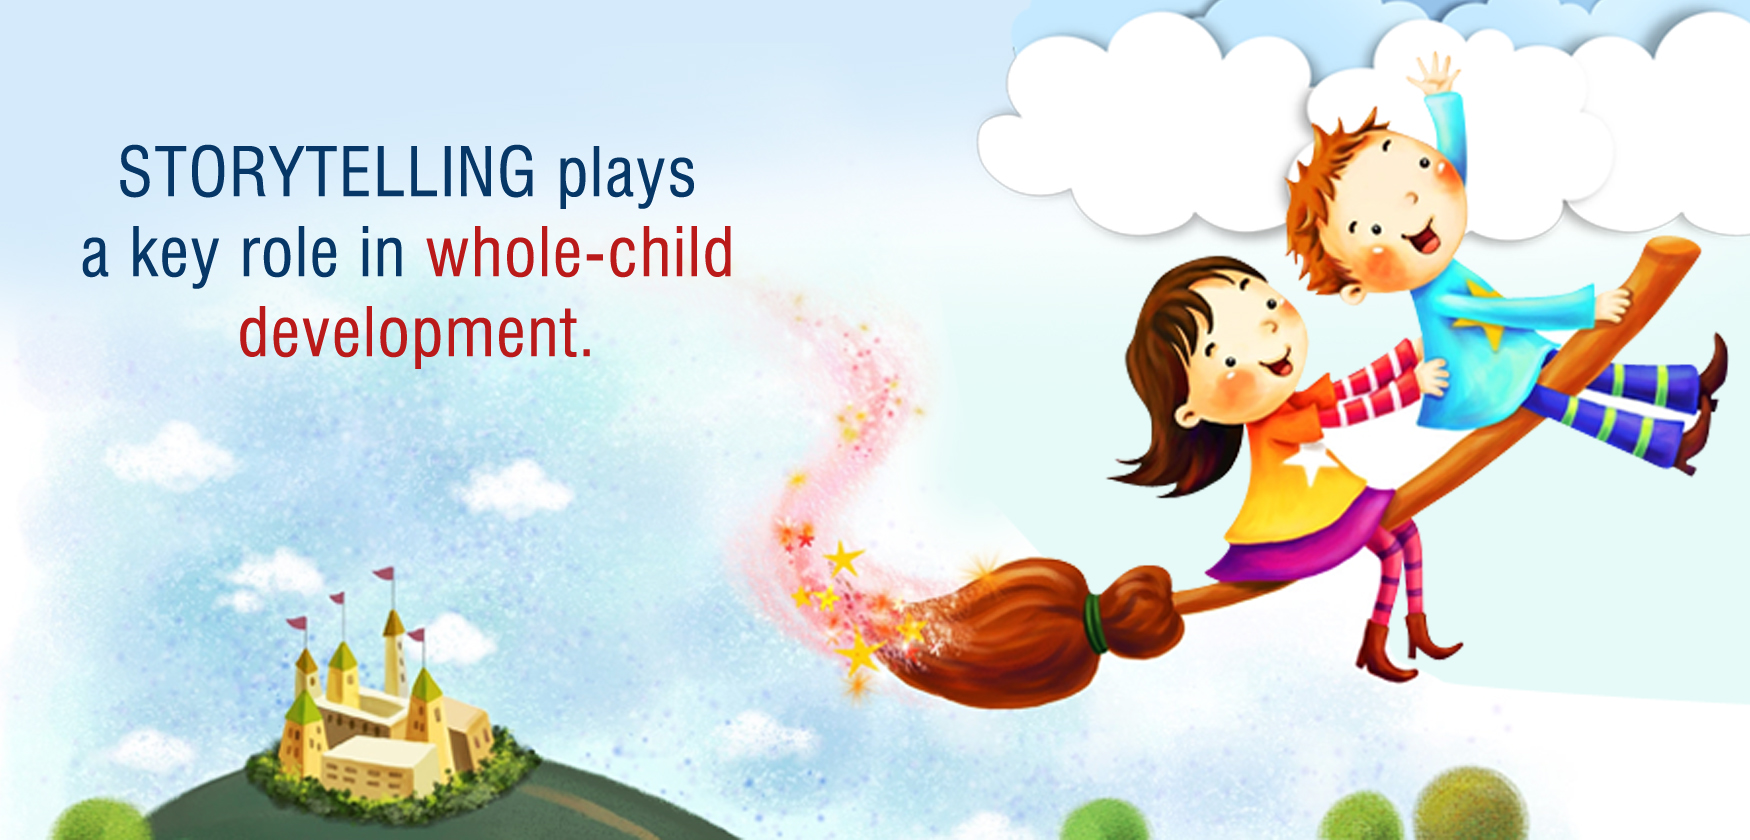 Storytelling plays a key role in whole-child development.